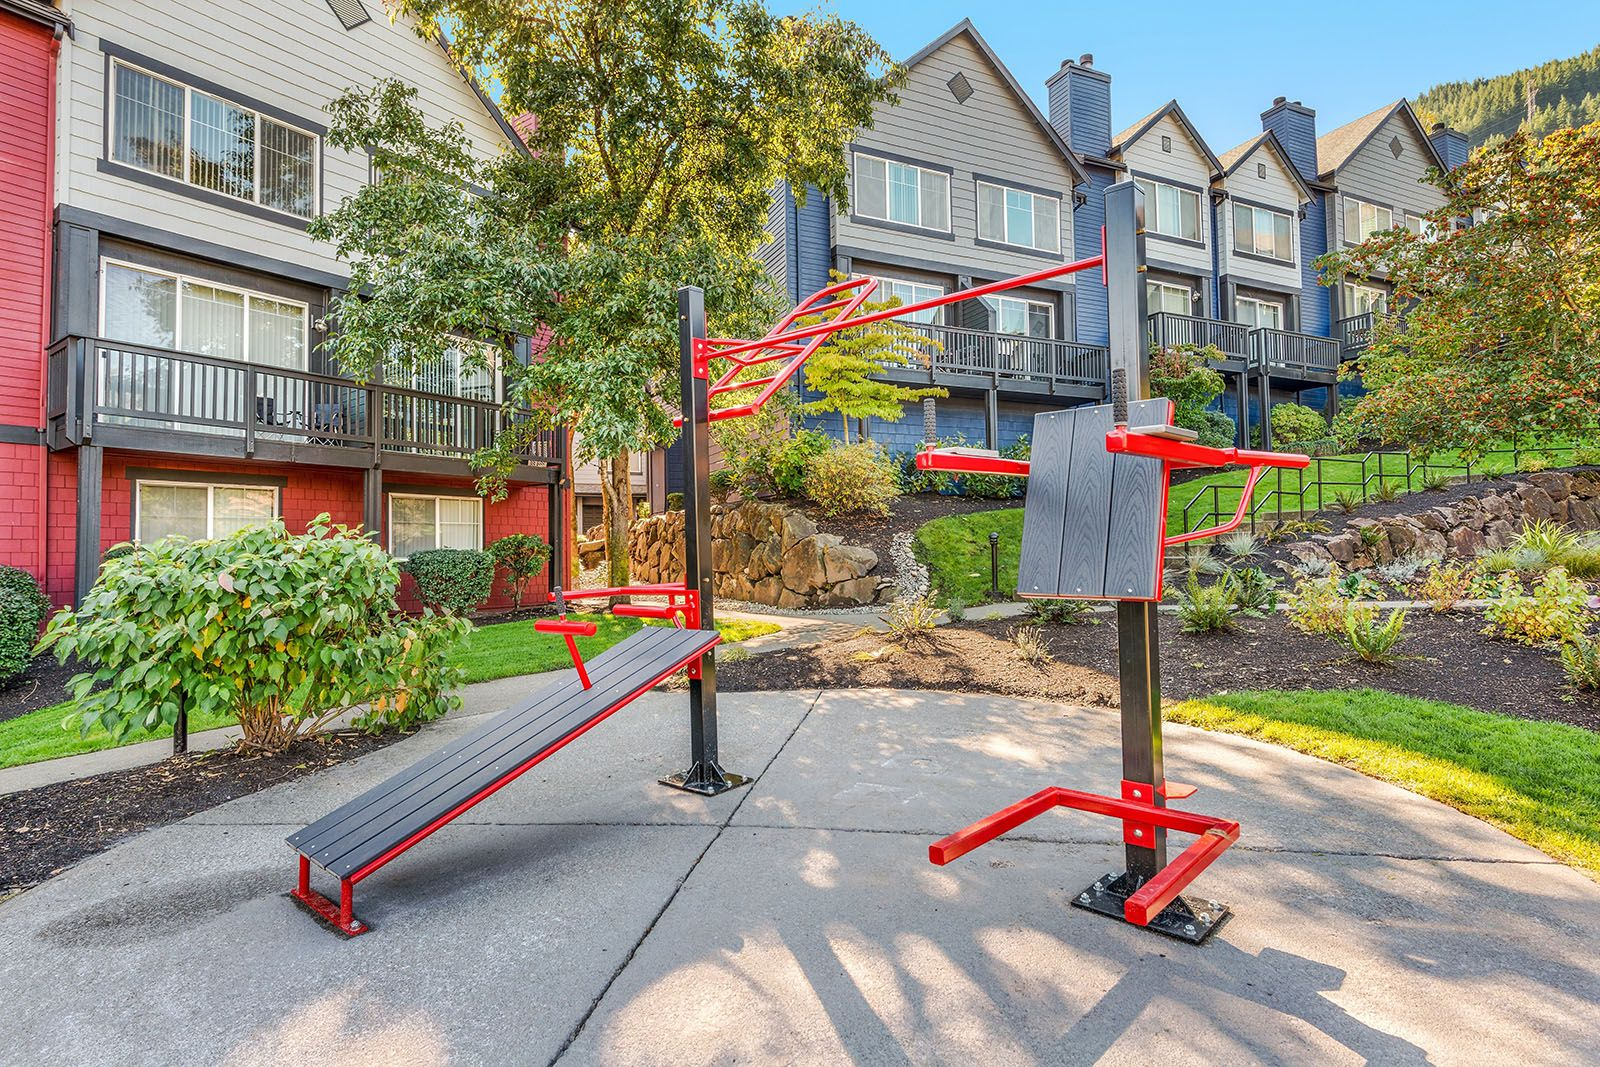 Take Your Workout Outside With Our Outdoor Crossfit Gym Equipment Arrivenorthbend Wa Apartments Ihavearr Apartment Communities North Bend Luxury Townhomes